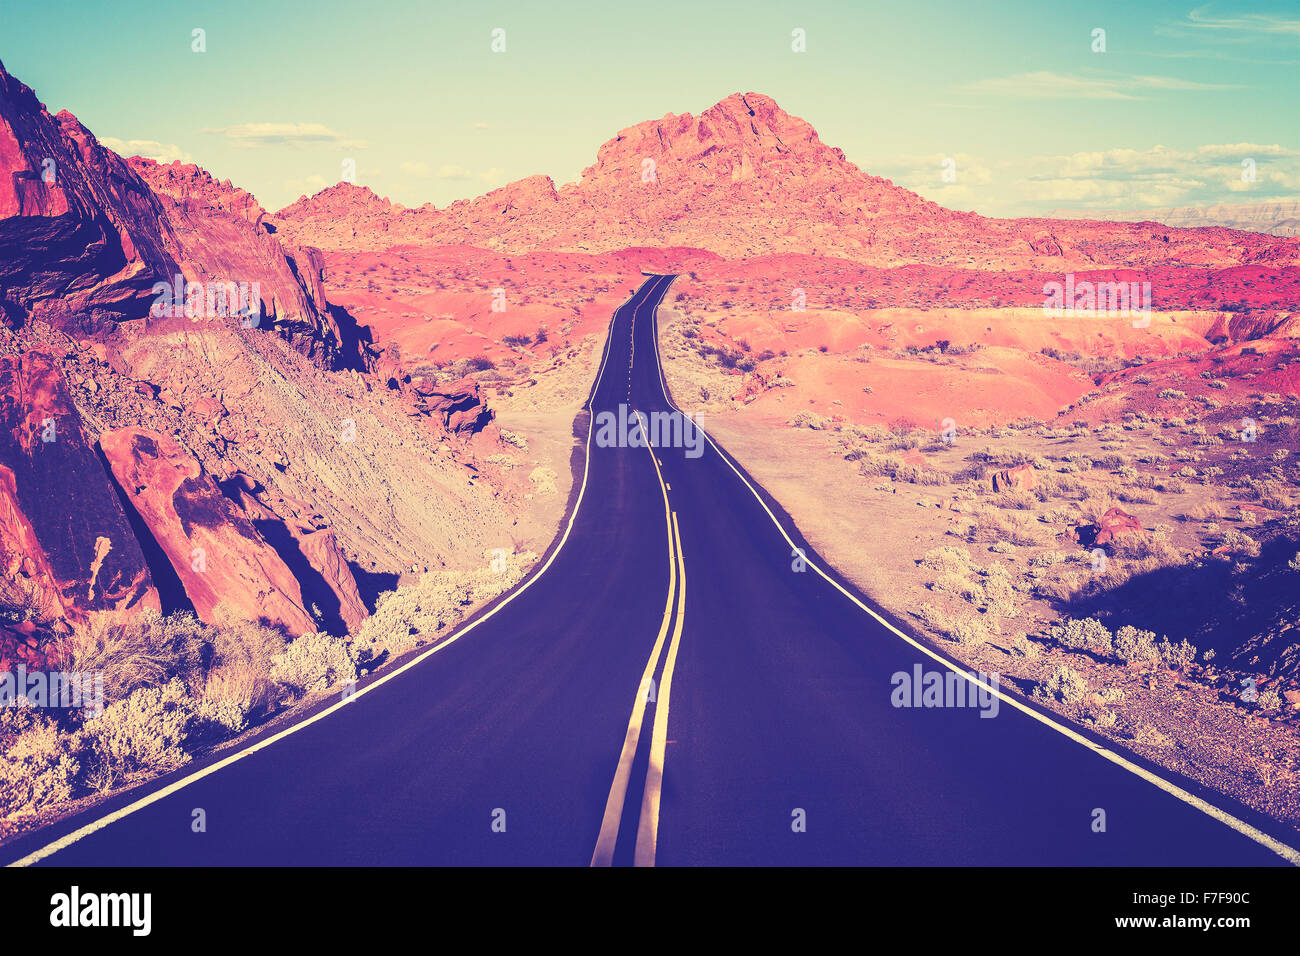 Vintage toned curved desert highway, travel concept, USA. - Stock Image